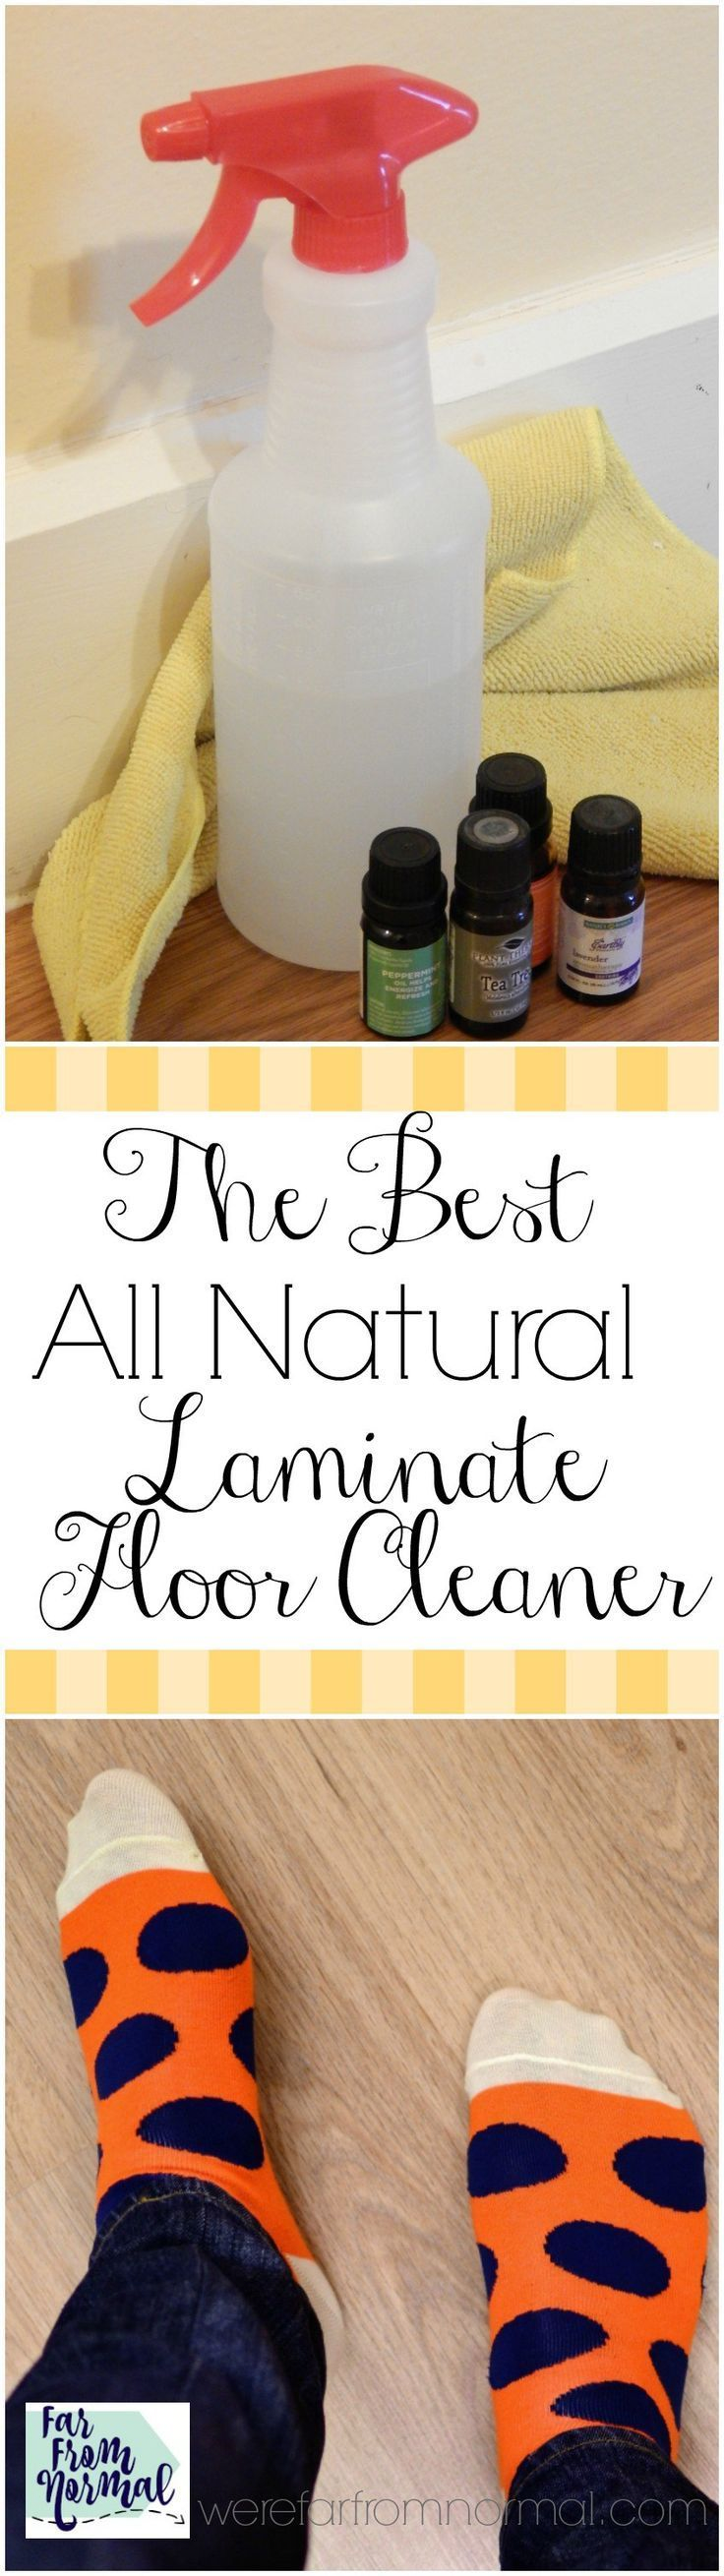 Do you have laminate floors and need an easy way to clean them? My laminate floor cleaner not only works great but is free of any harsh chemicals!